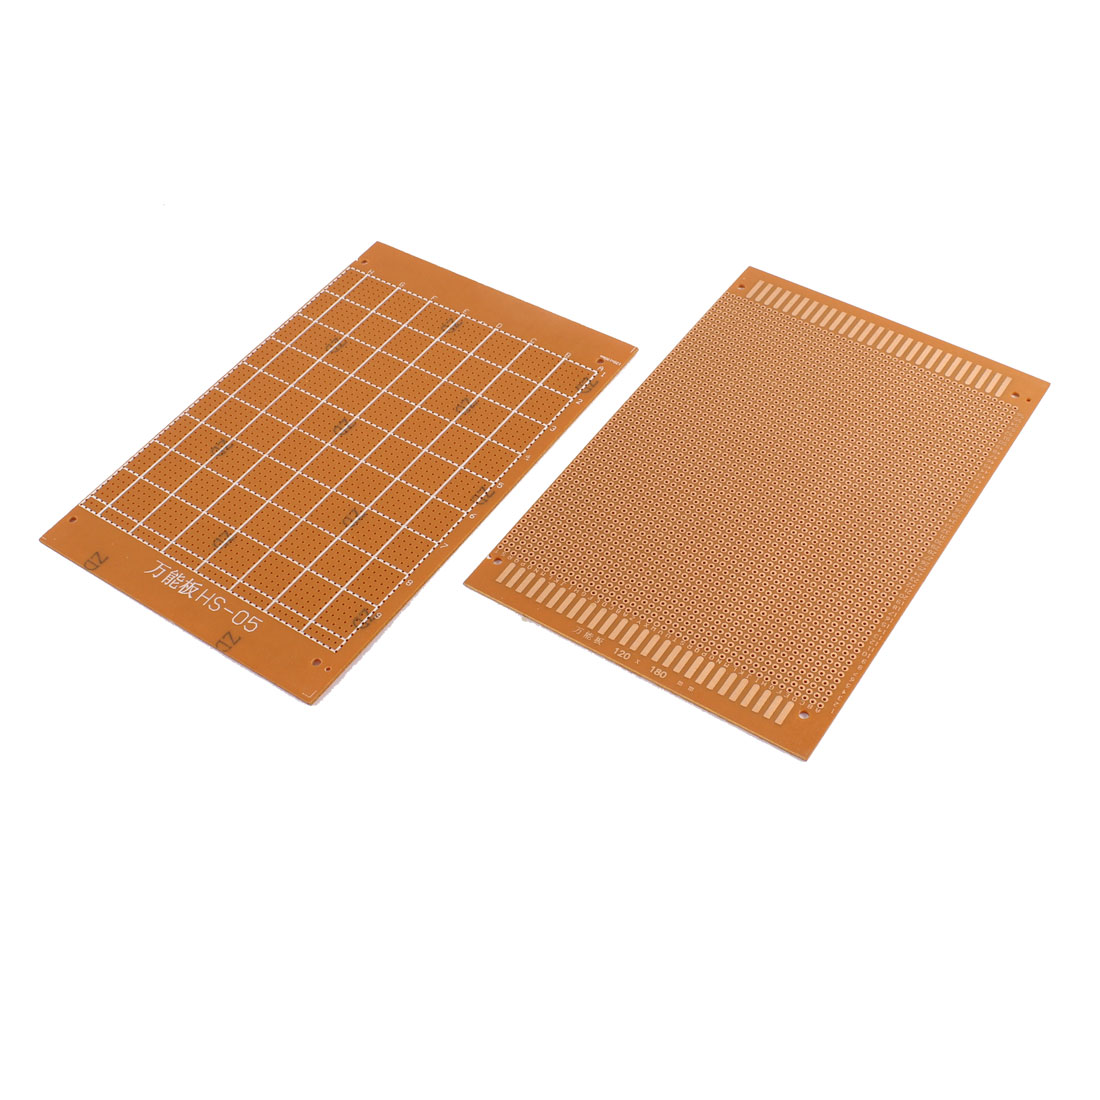 2pcs 12cm x 18cm Single Side Copper Prototyping PCB Printed Circuit Board Prototype Breadboard